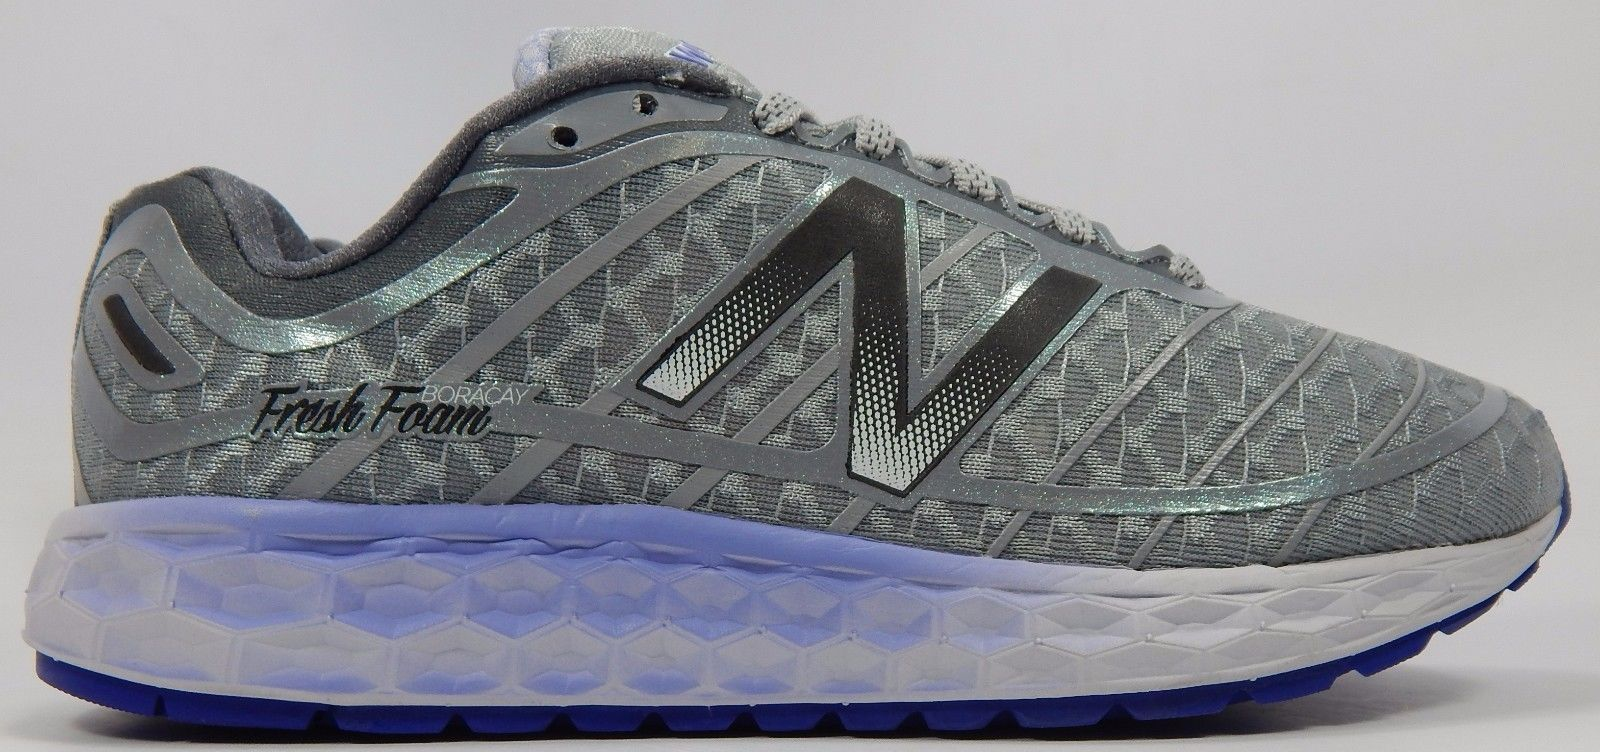 New Balance 980 v2 Fresh Foam Boracay Women's Shoes Sz 6 D WIDE EU 36.5 W980SS2